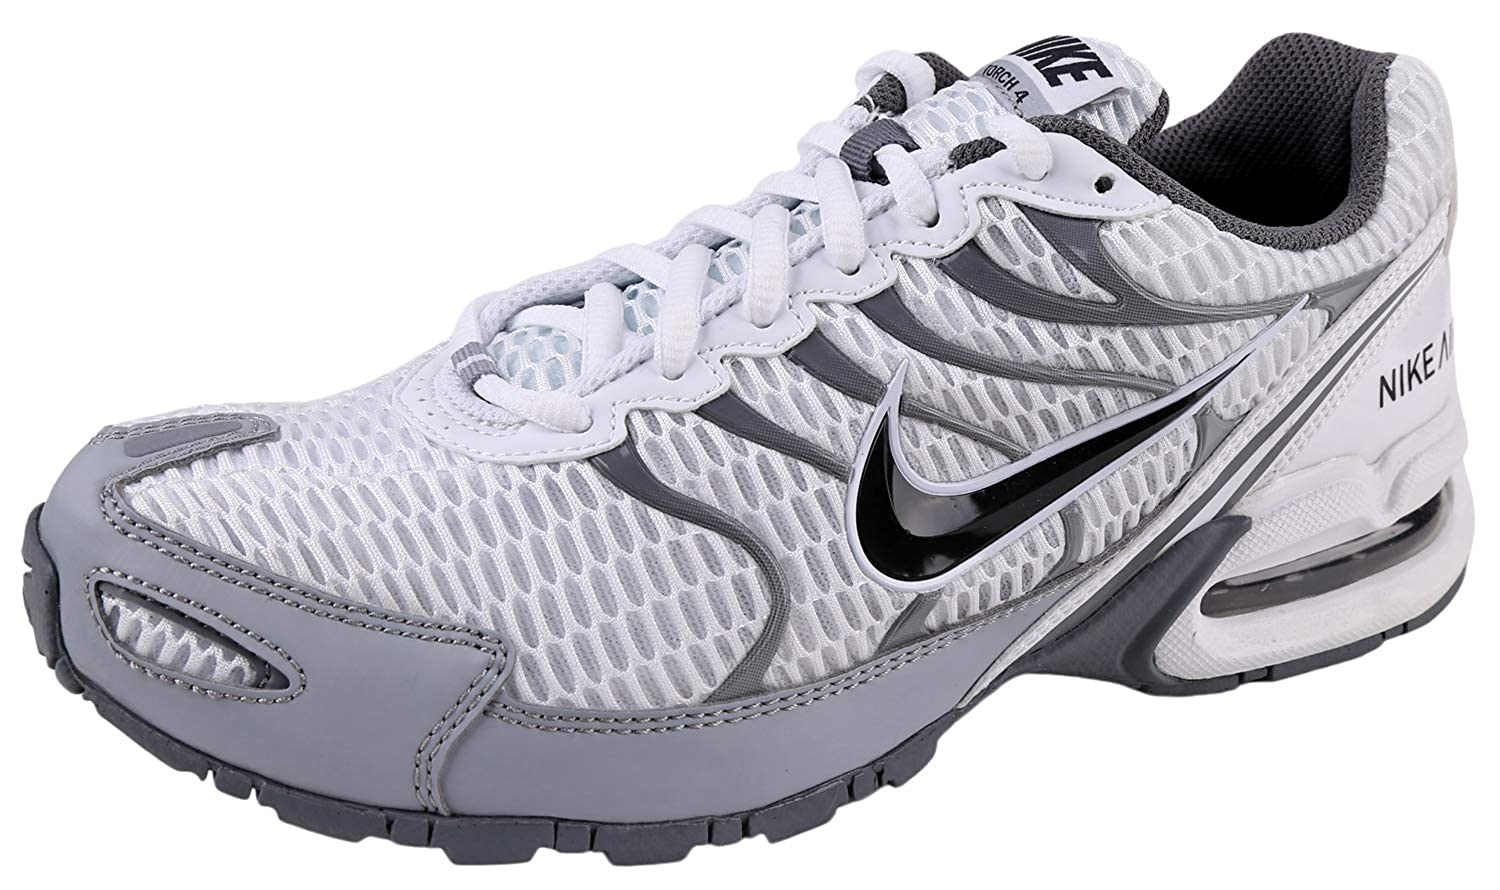 164988b21 Amazon.com | NIKE Mens Air Max Torch 4 Running Shoe (12 D(M) US ...